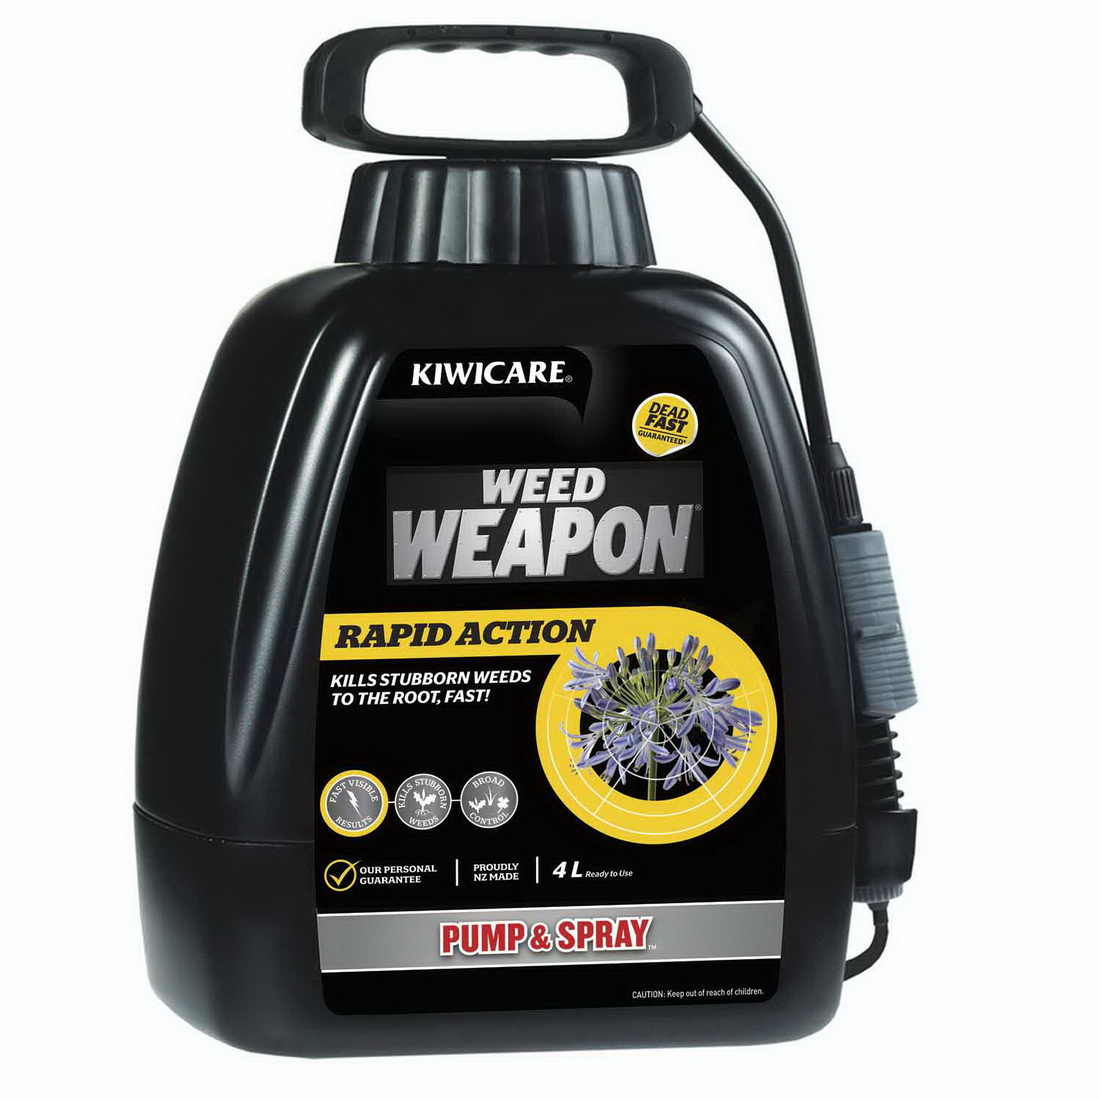 Weed Weapon Rapid Action Pump & Spray Weed Control 4L